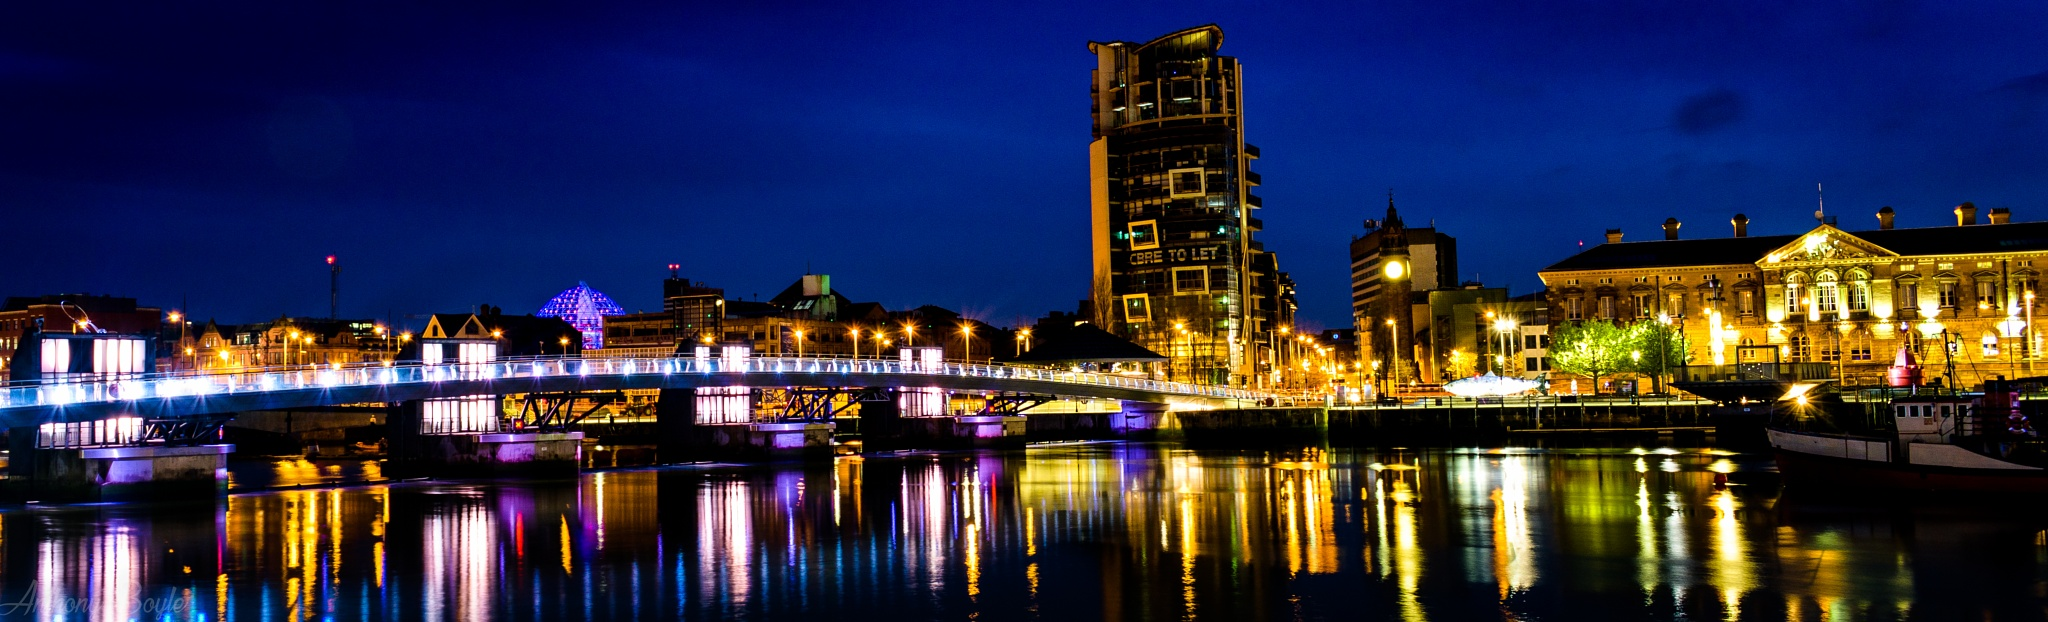 Belfast at Night by Anthony Boyle